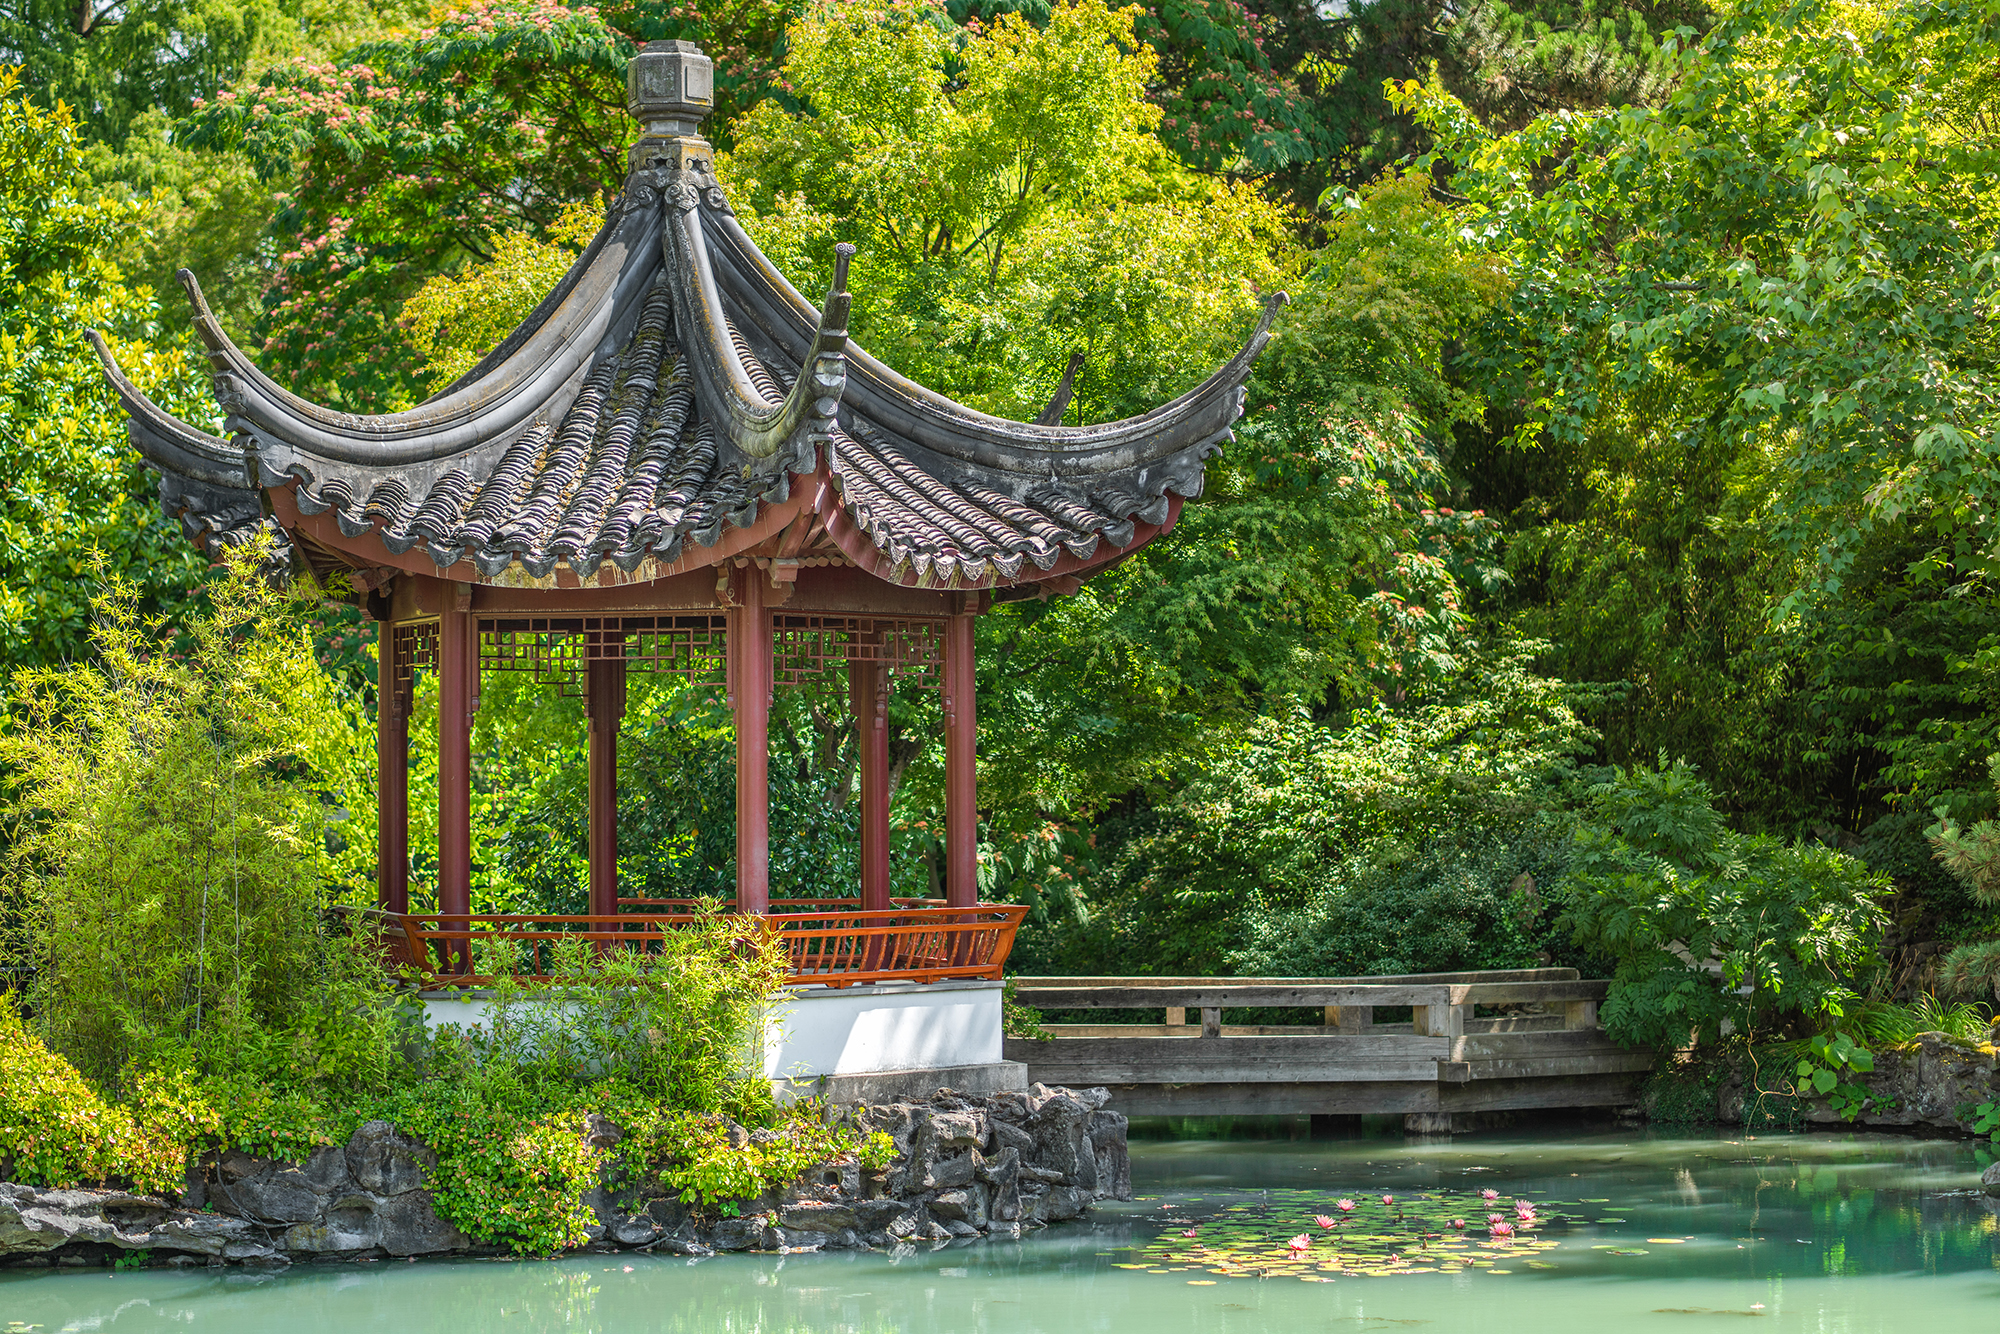 Beautiful afternoon at Dr. Sun Yat-Sen Classical Chinese Garden.